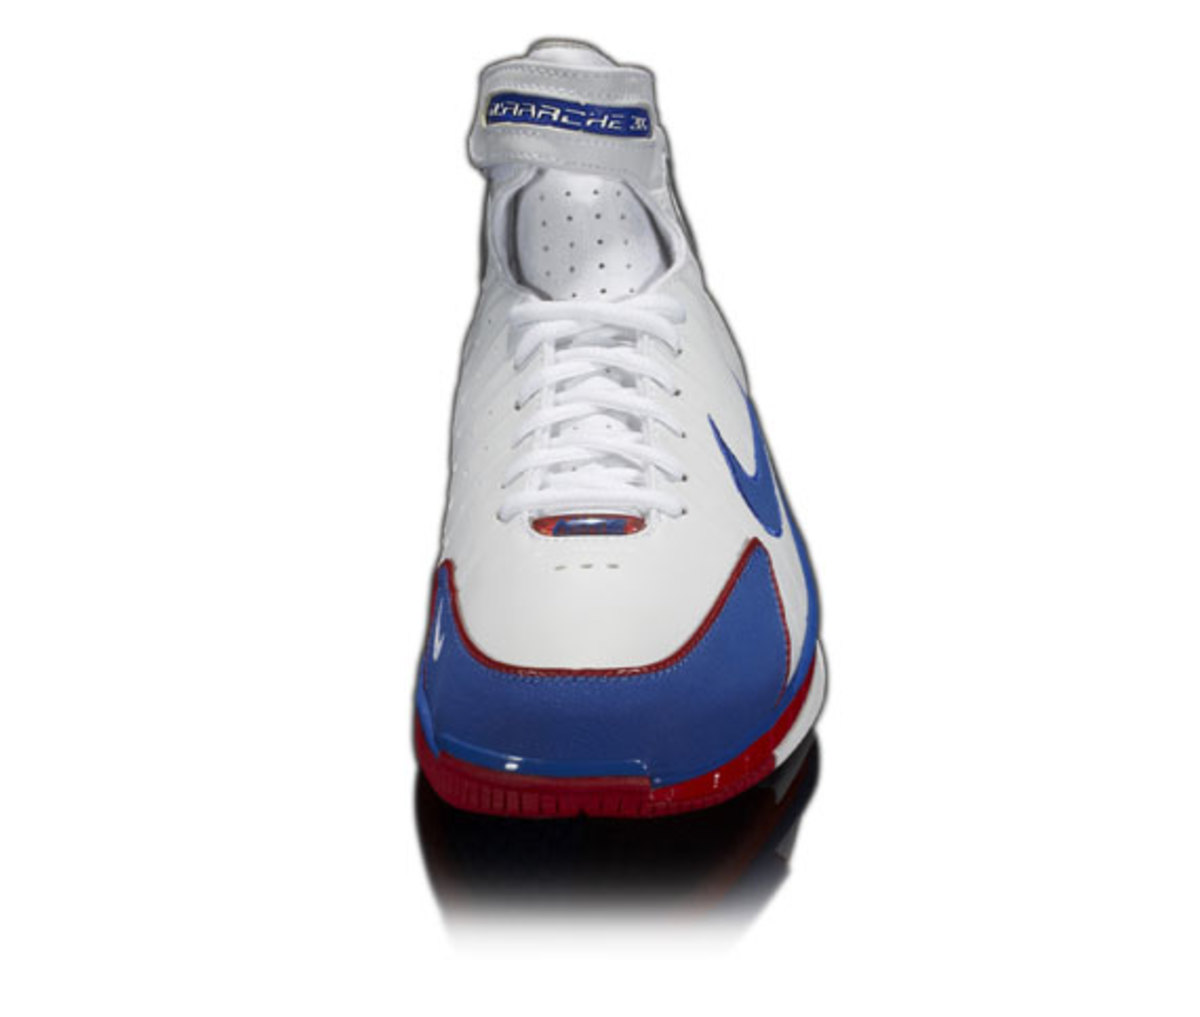 nike-basketball-1992-2012-nike-air-zoom-huarache-26